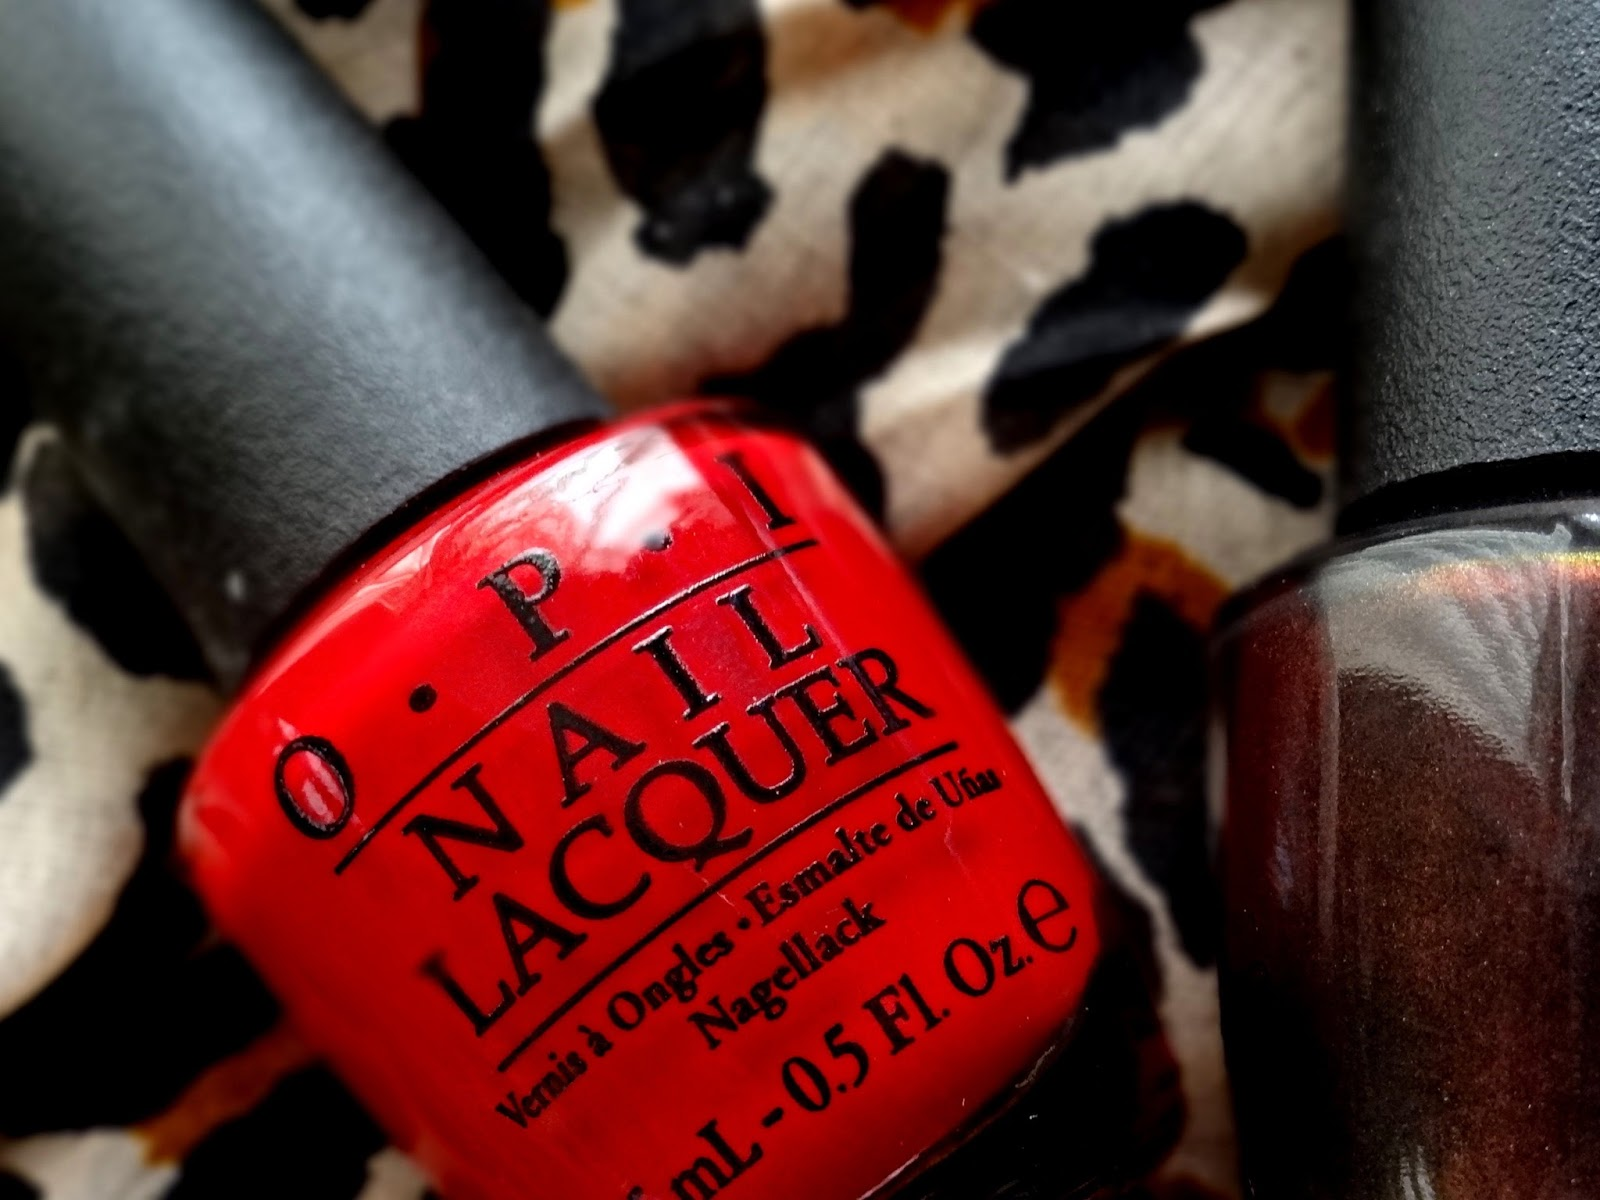 OPI Wrapped Wild For The Holidays - Muir Muir On The Wall, Big Apple Red | OPI Holiday 2014 Limited Edition